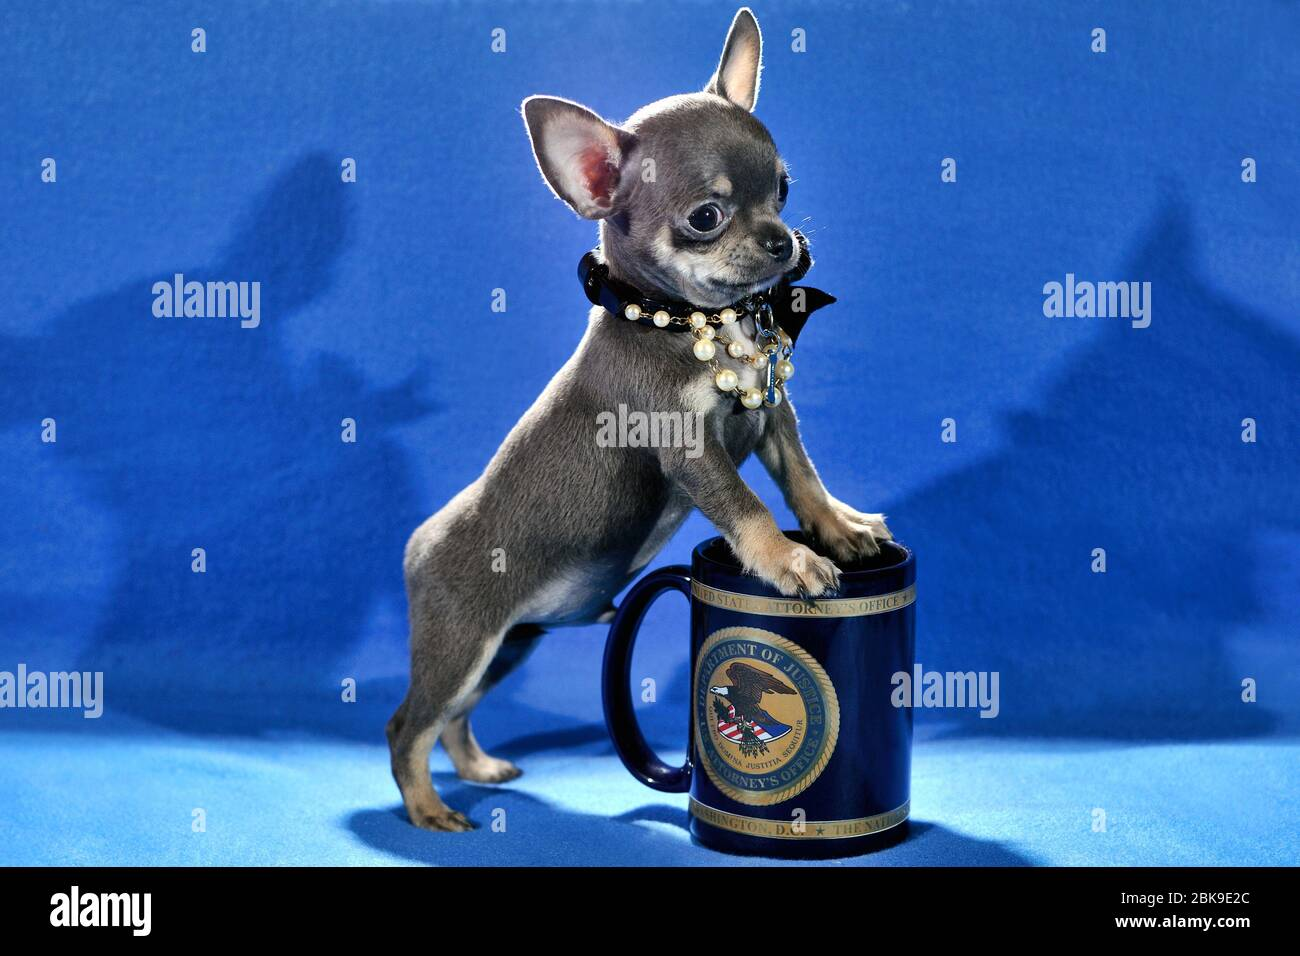 Page 3 Miniature Dog High Resolution Stock Photography And Images Alamy